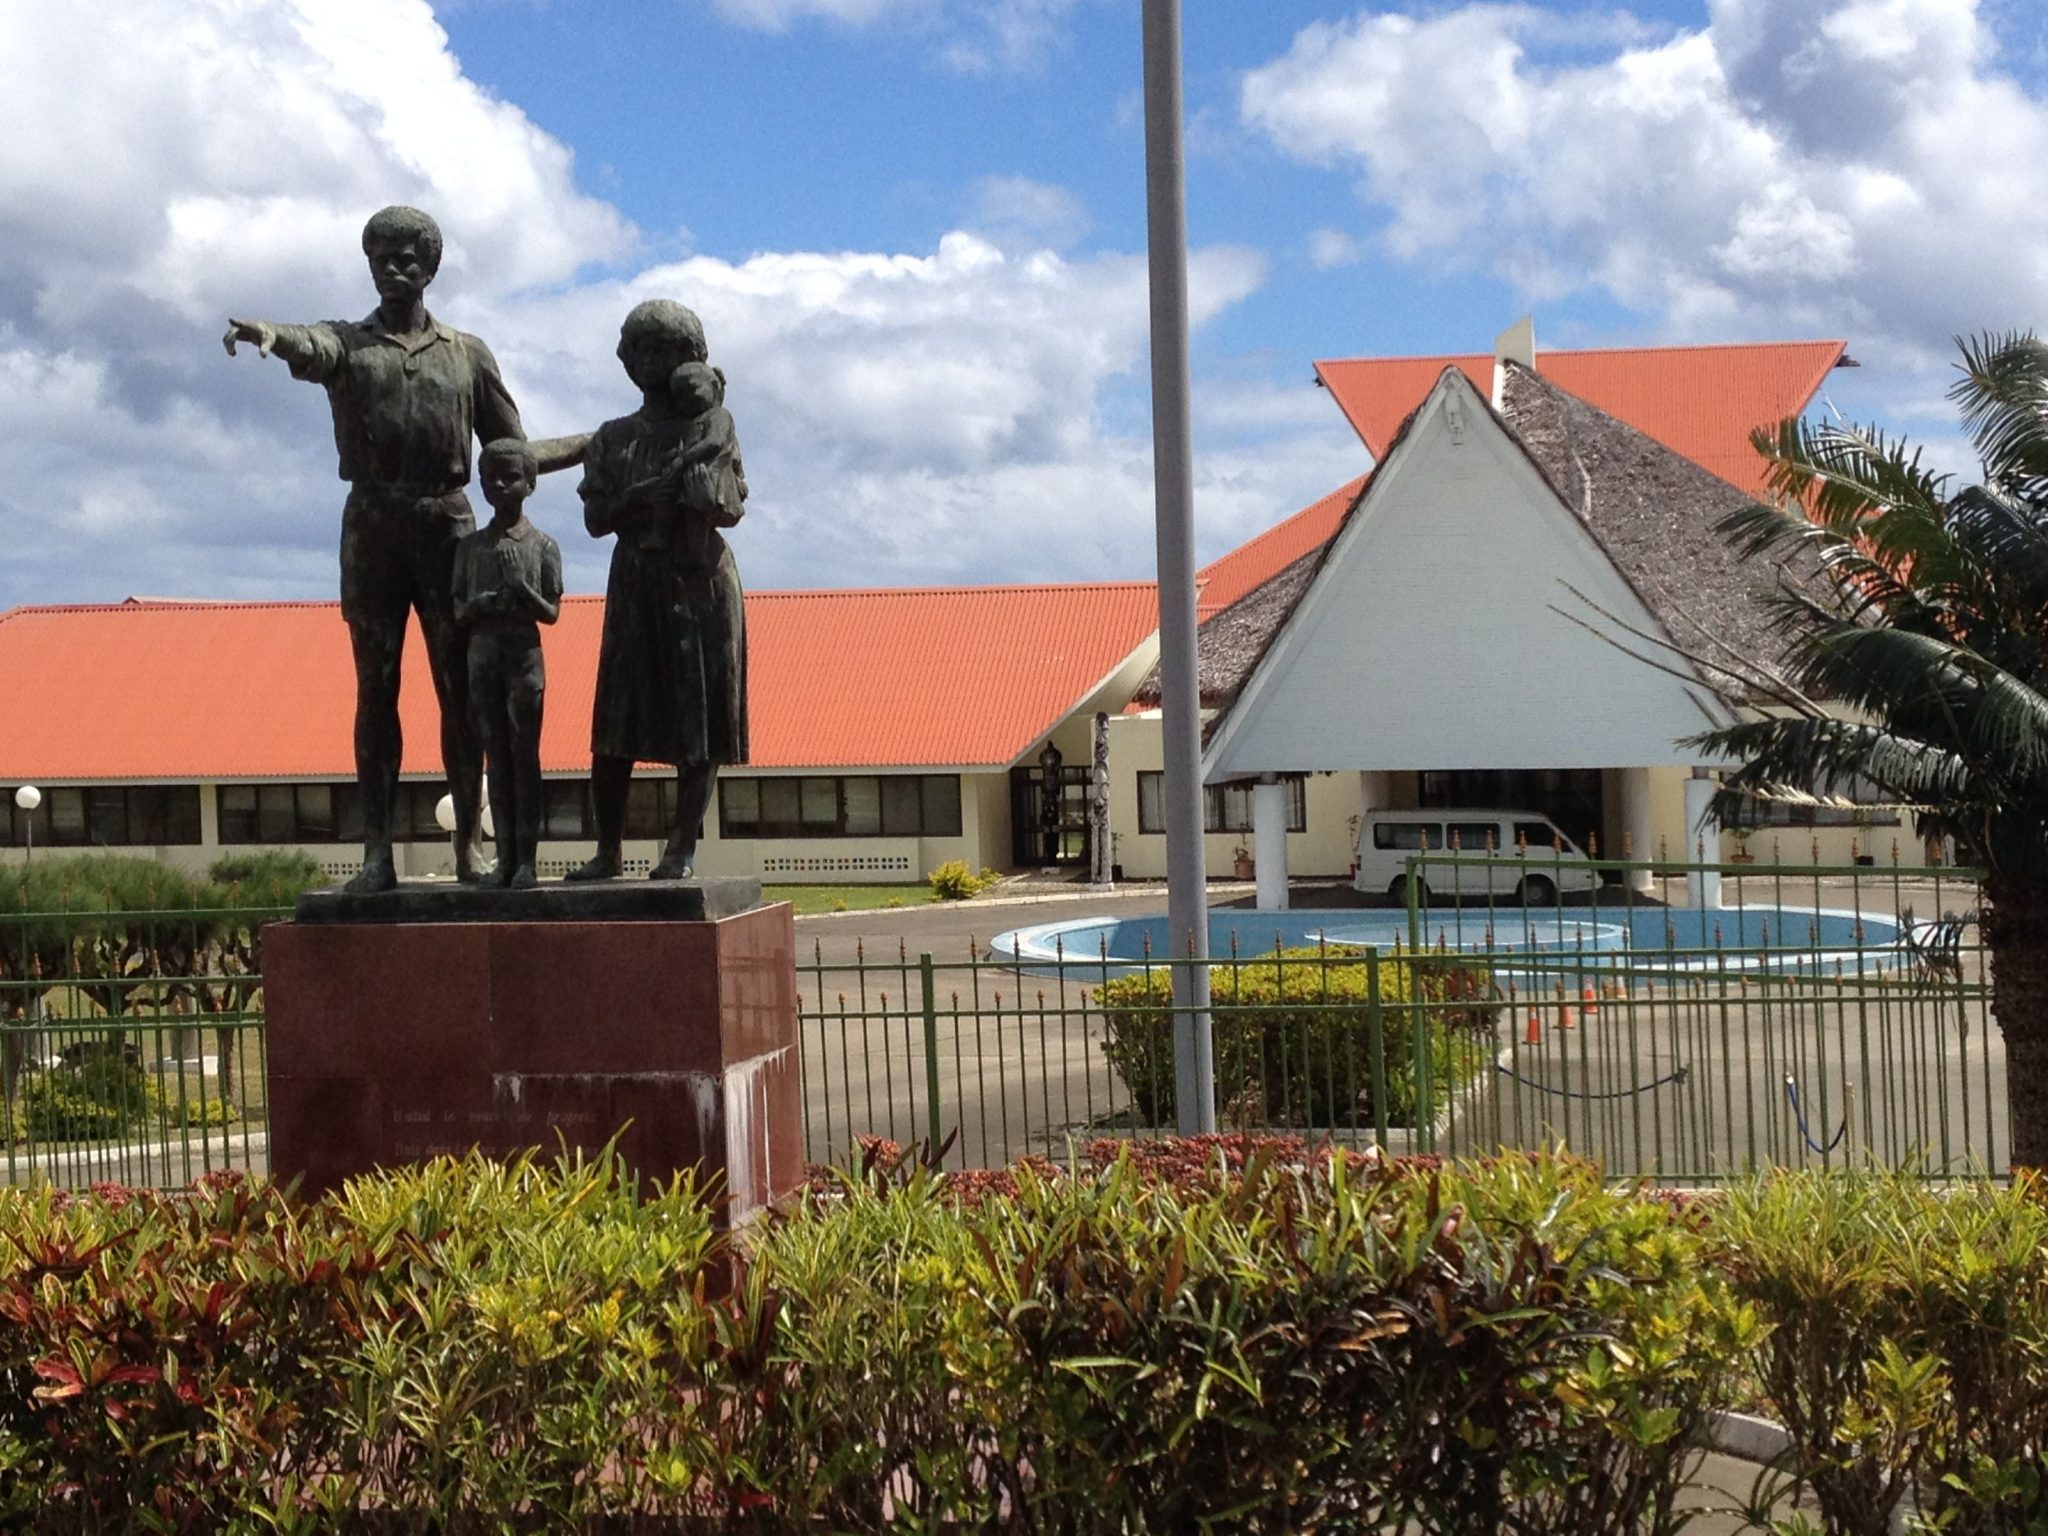 89-this-statue-in-front-of-vanuatus-parliment-building-signifies-to-vanuatus-citizens-how-important-the-complete-traditional-family-unit-is-for-a-healthy-long-lived-nation